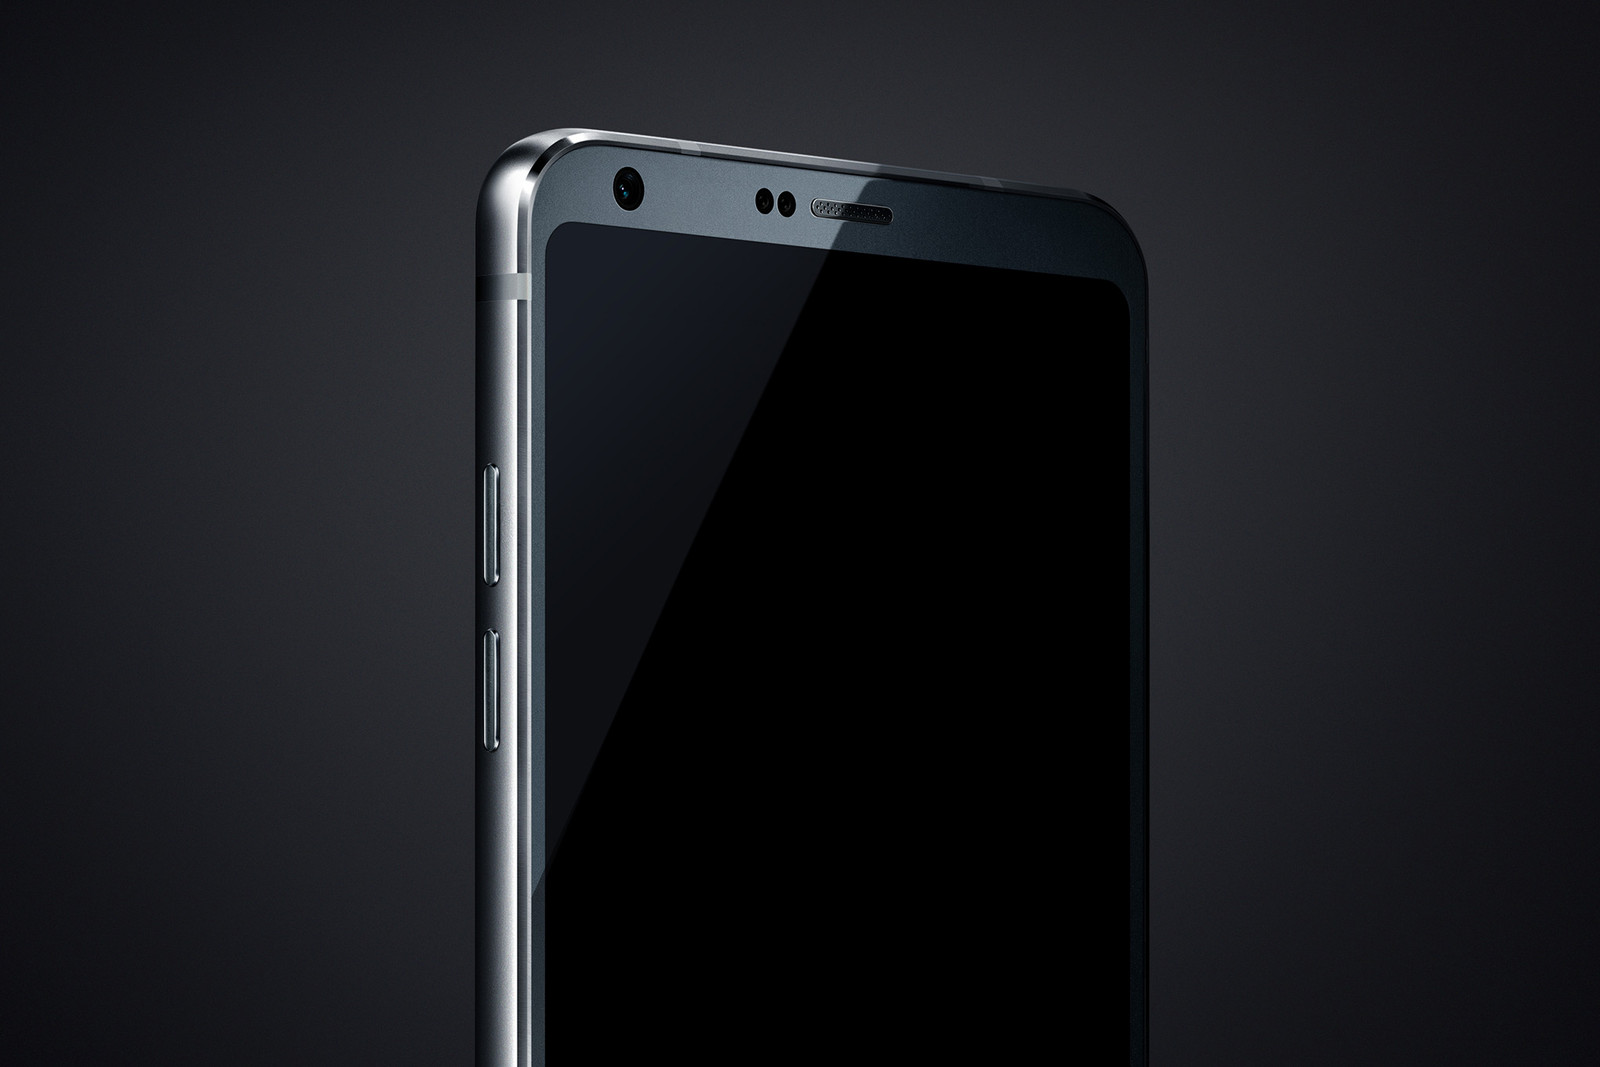 LG G6 shown from all angles before the MWC 2017 show started